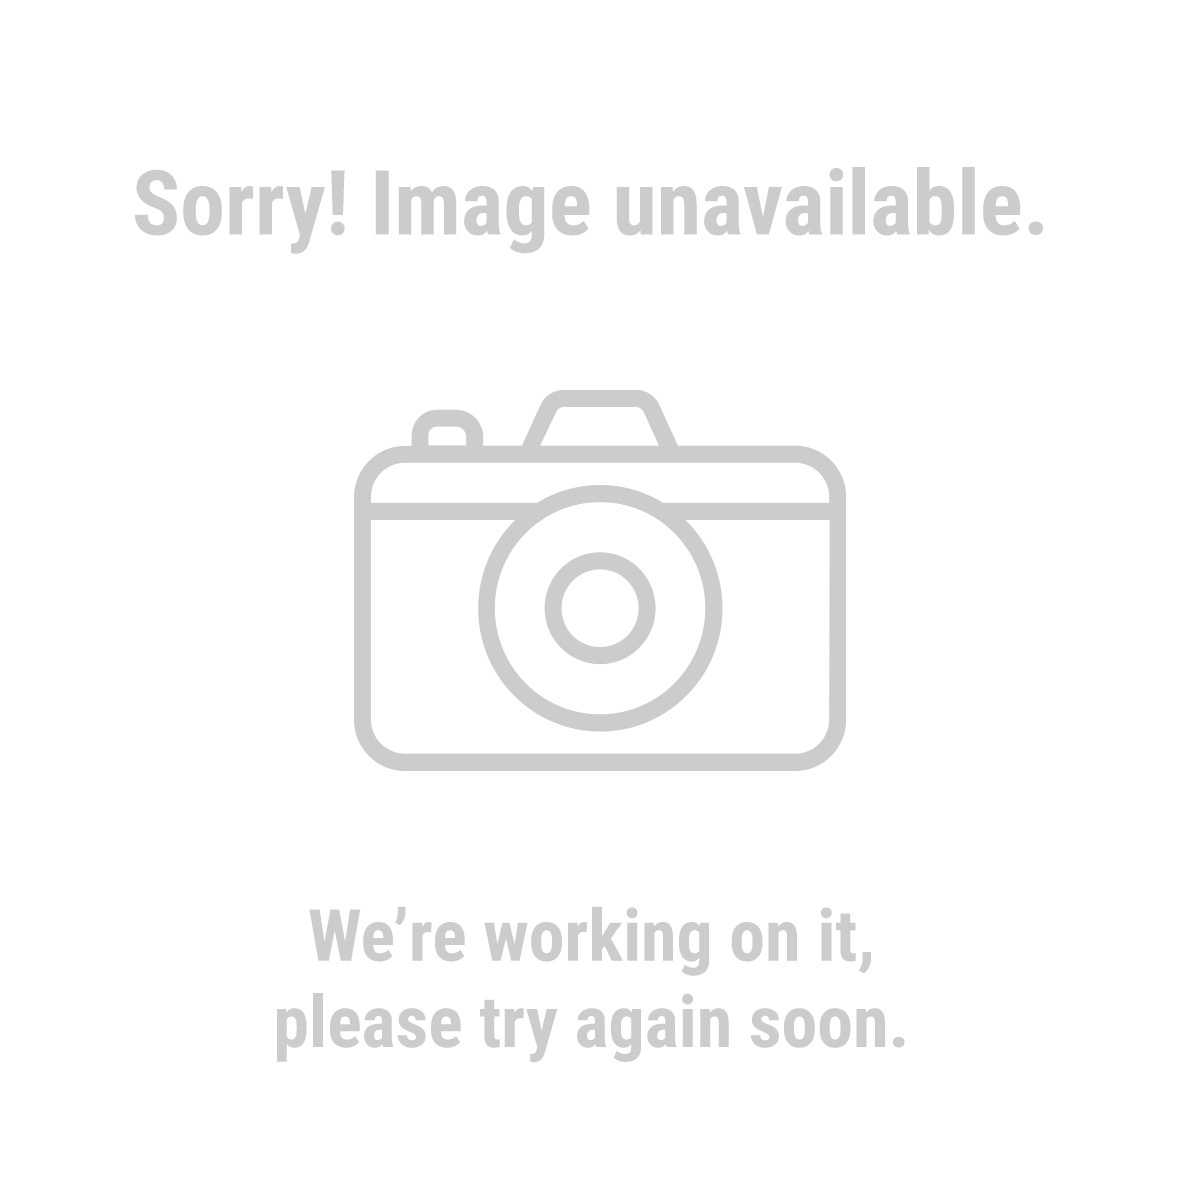 Pittsburgh 7386 8 Piece Magnetic Screwdriver Set